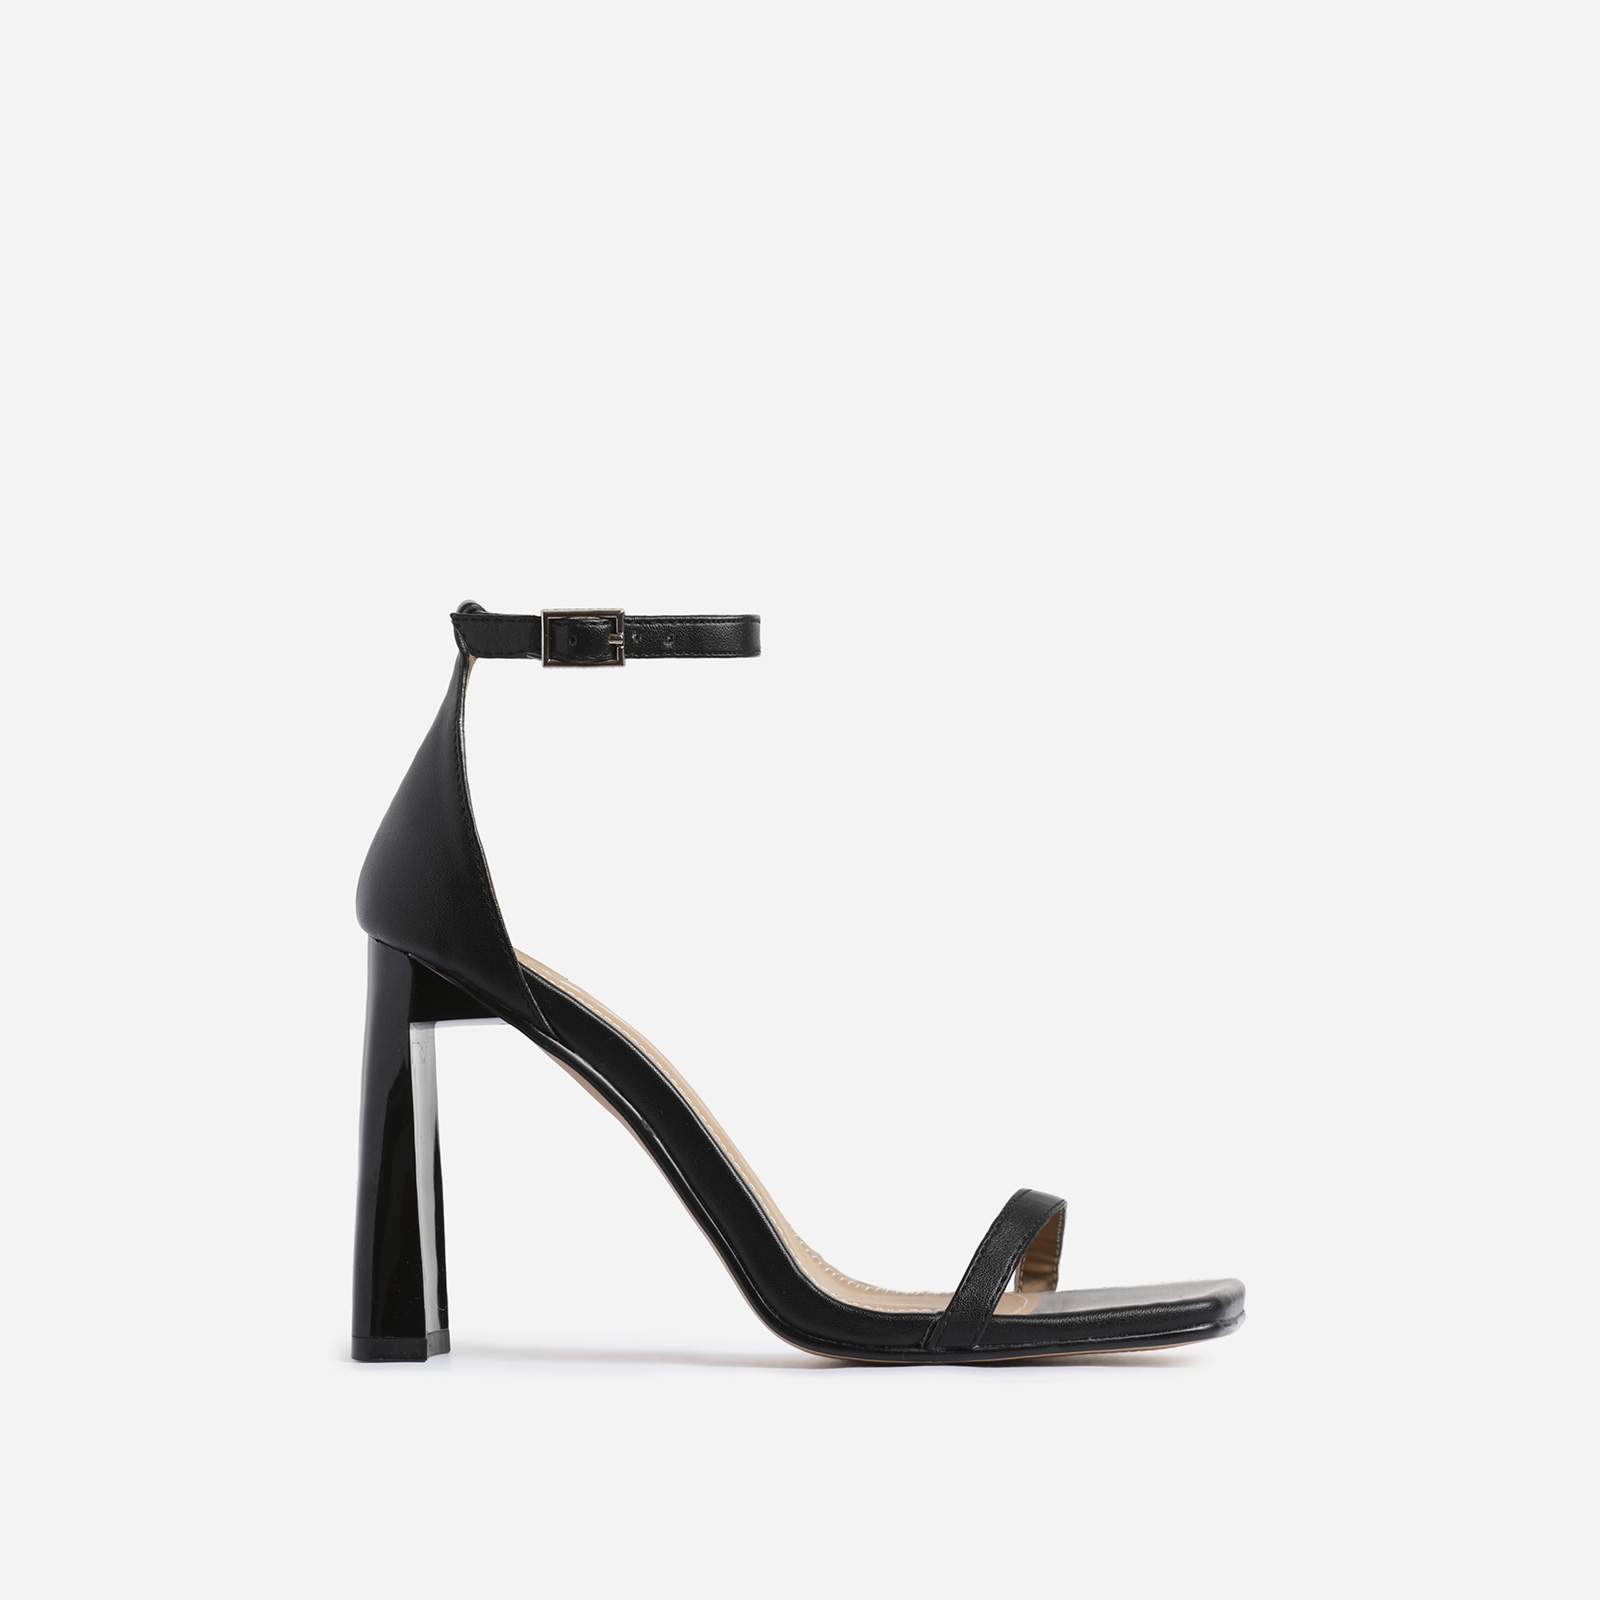 Ace Square Toe Flared Heel In Black Faux Leather